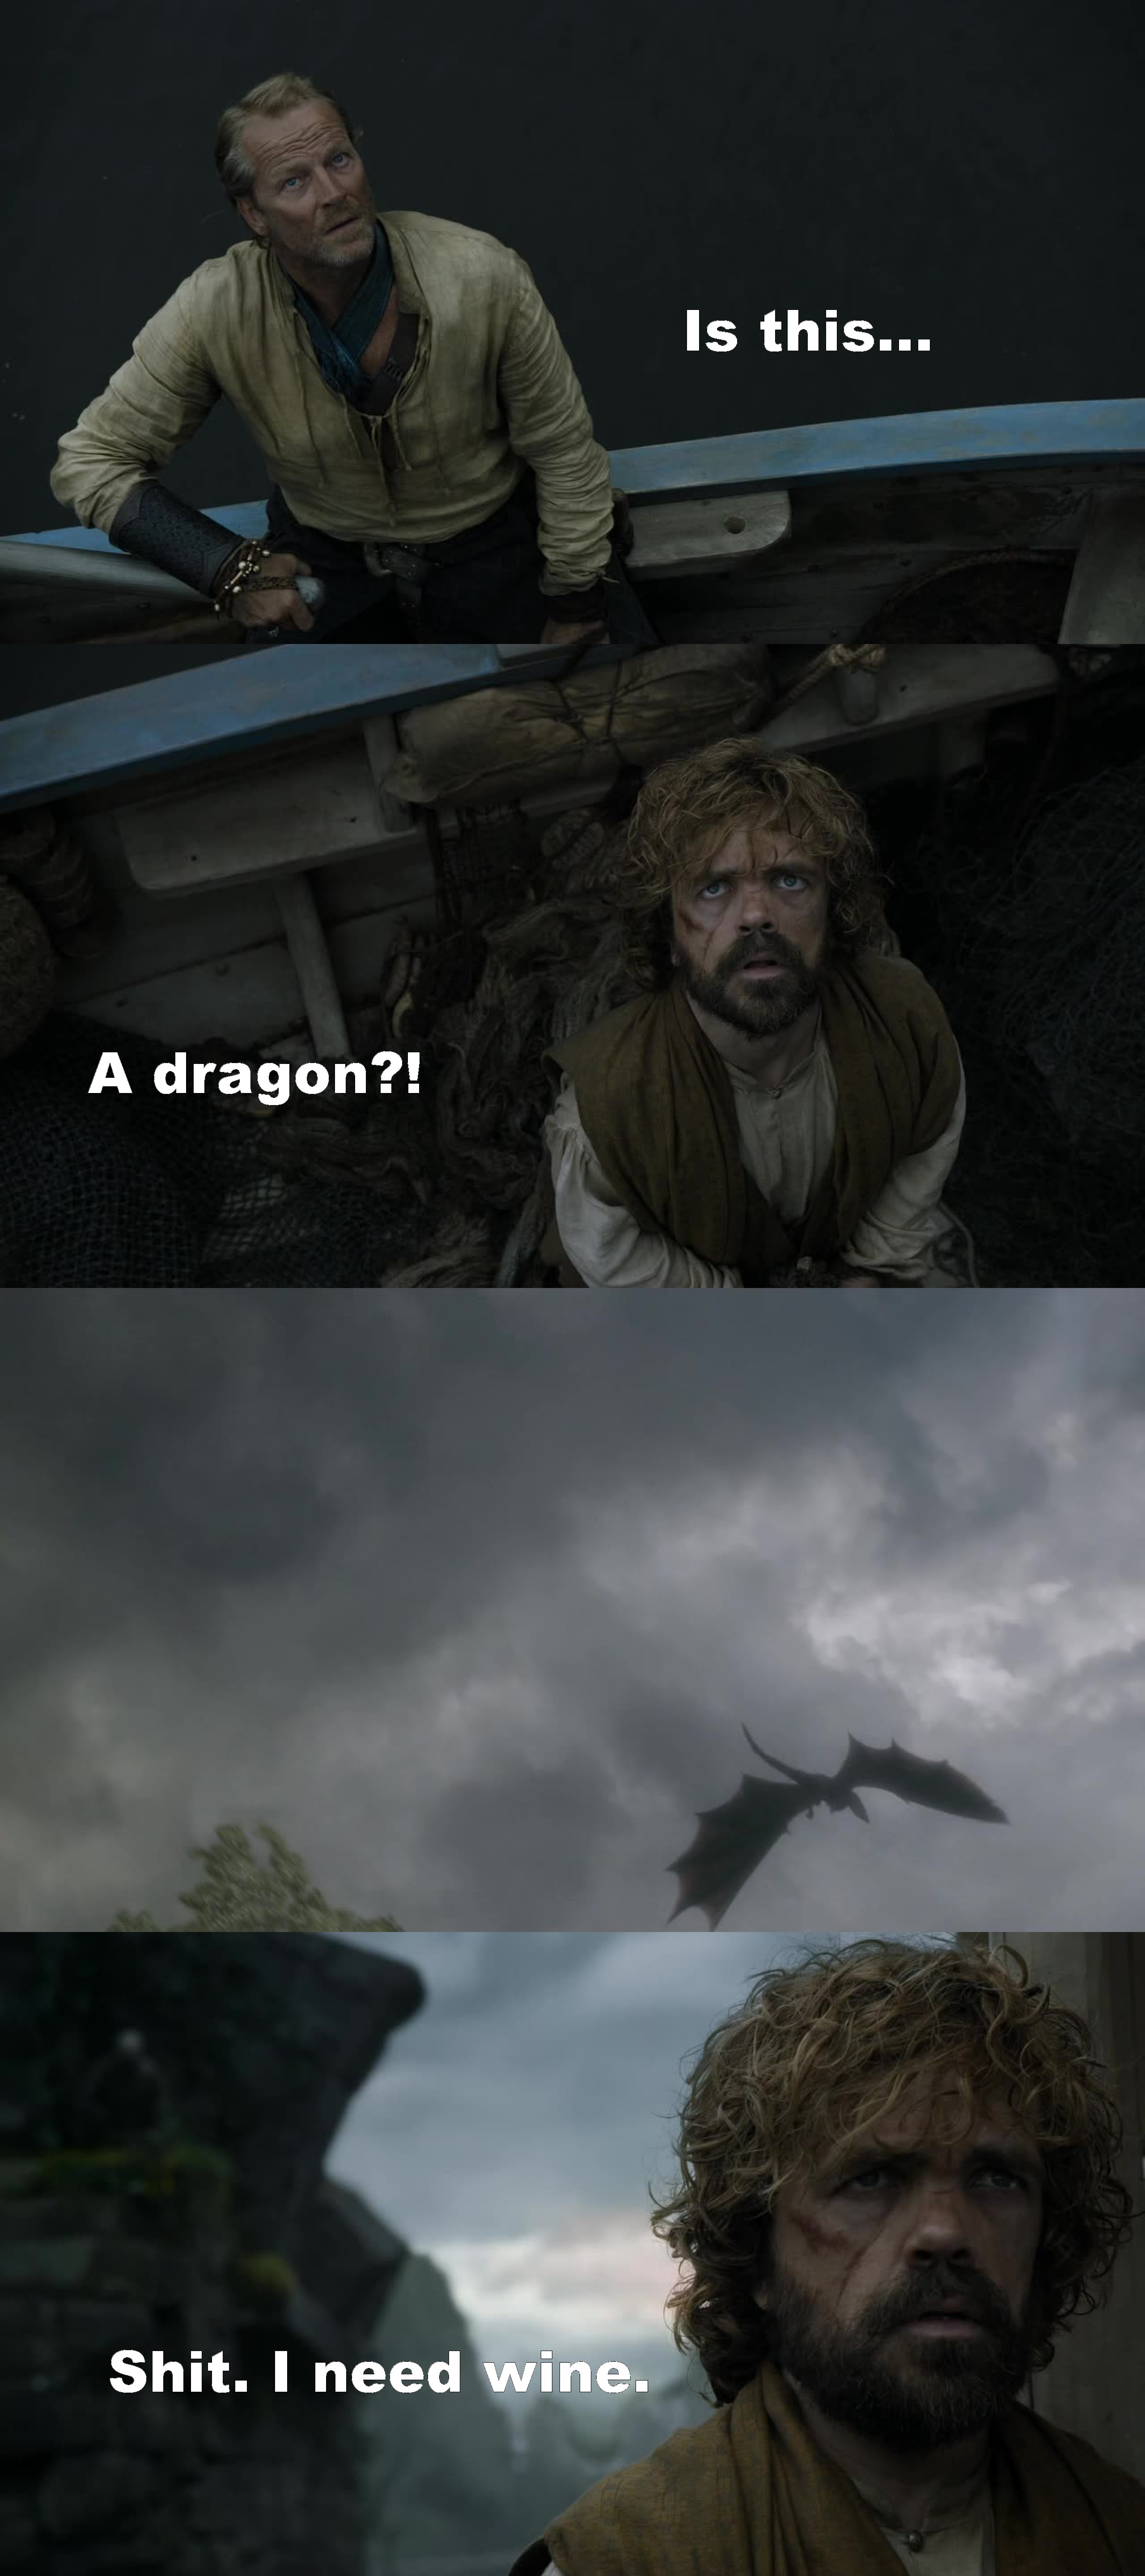 No you don't need some. You're right. It's a dragon.